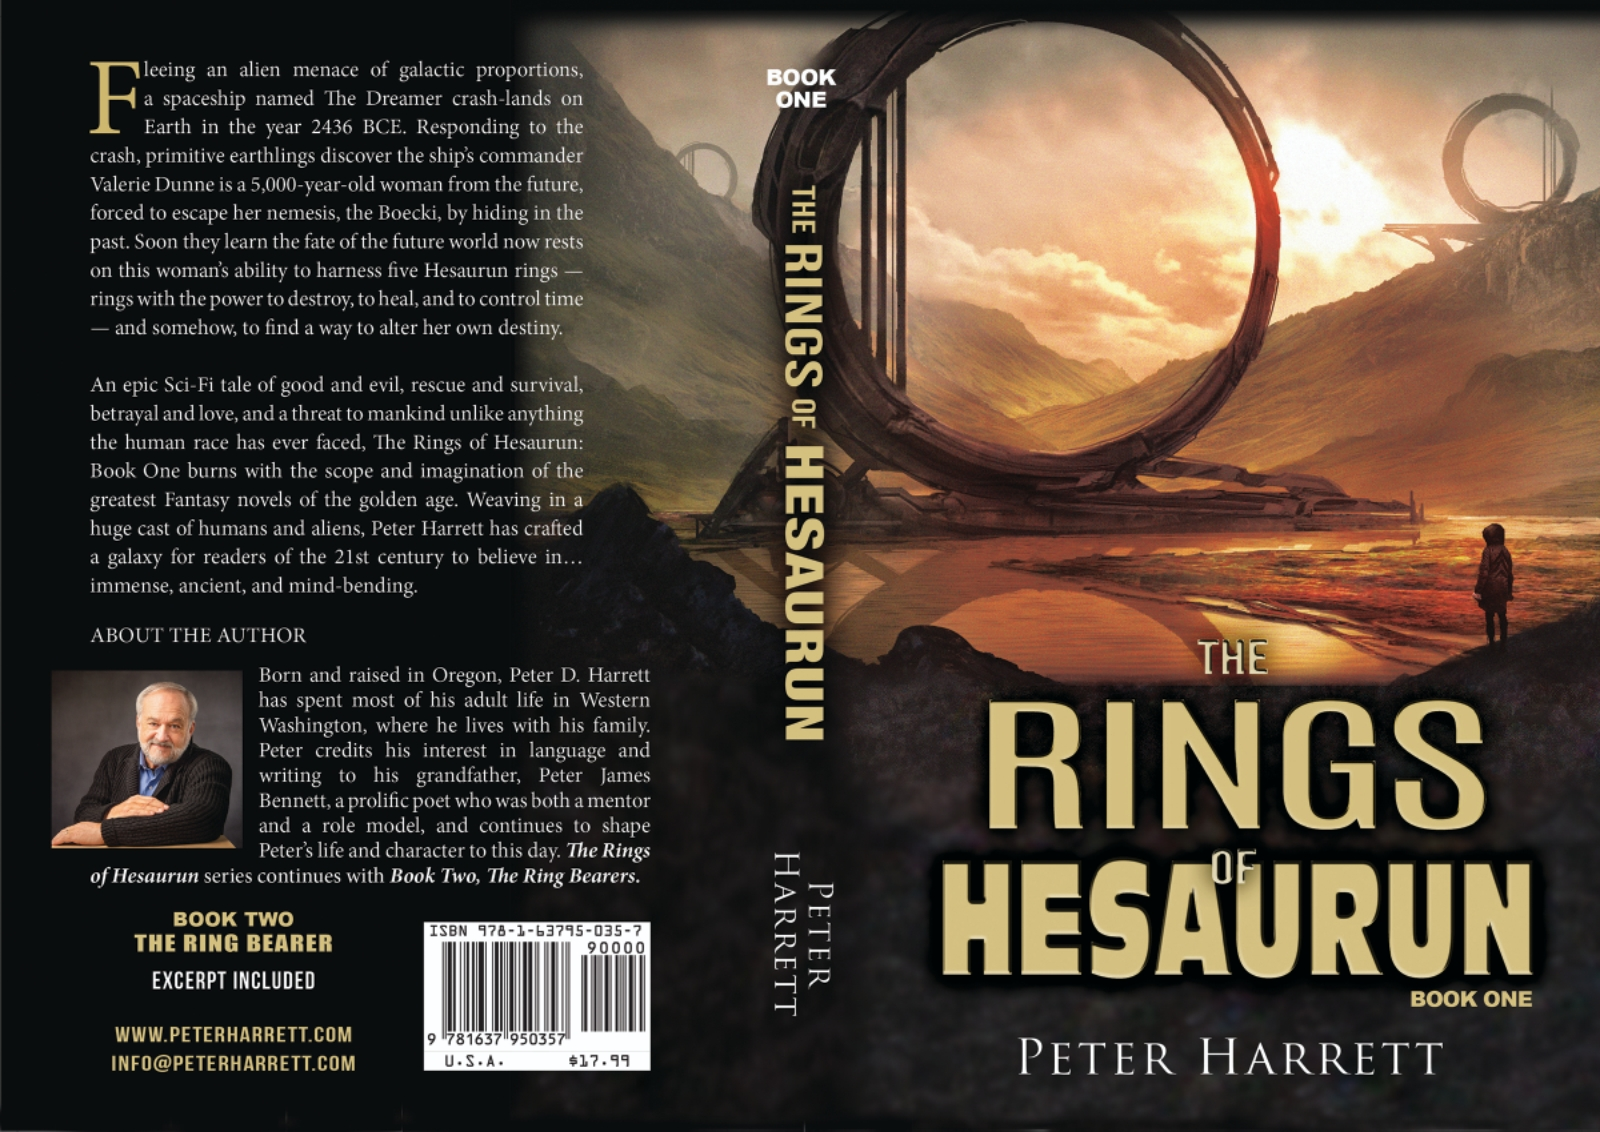 Peter Harrett To Release Part 2 Of His Fantasy Series, The Ring Of Hesaurun In The Summer